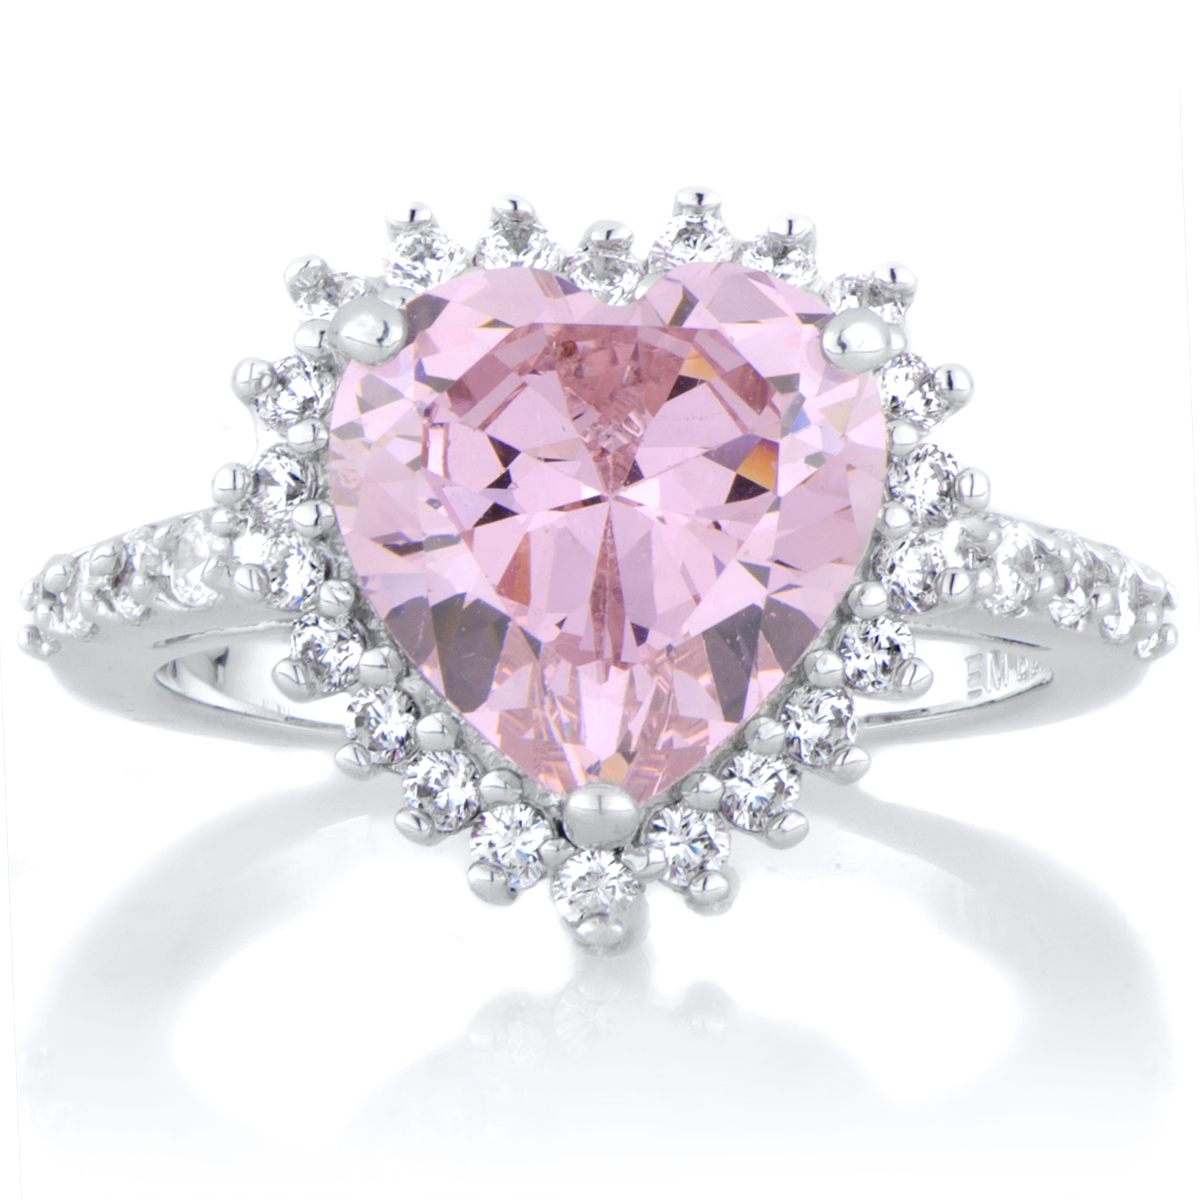 Darling's Pink Heart Shaped Engagement Ring Roll Off Image To Close Zoom  Window